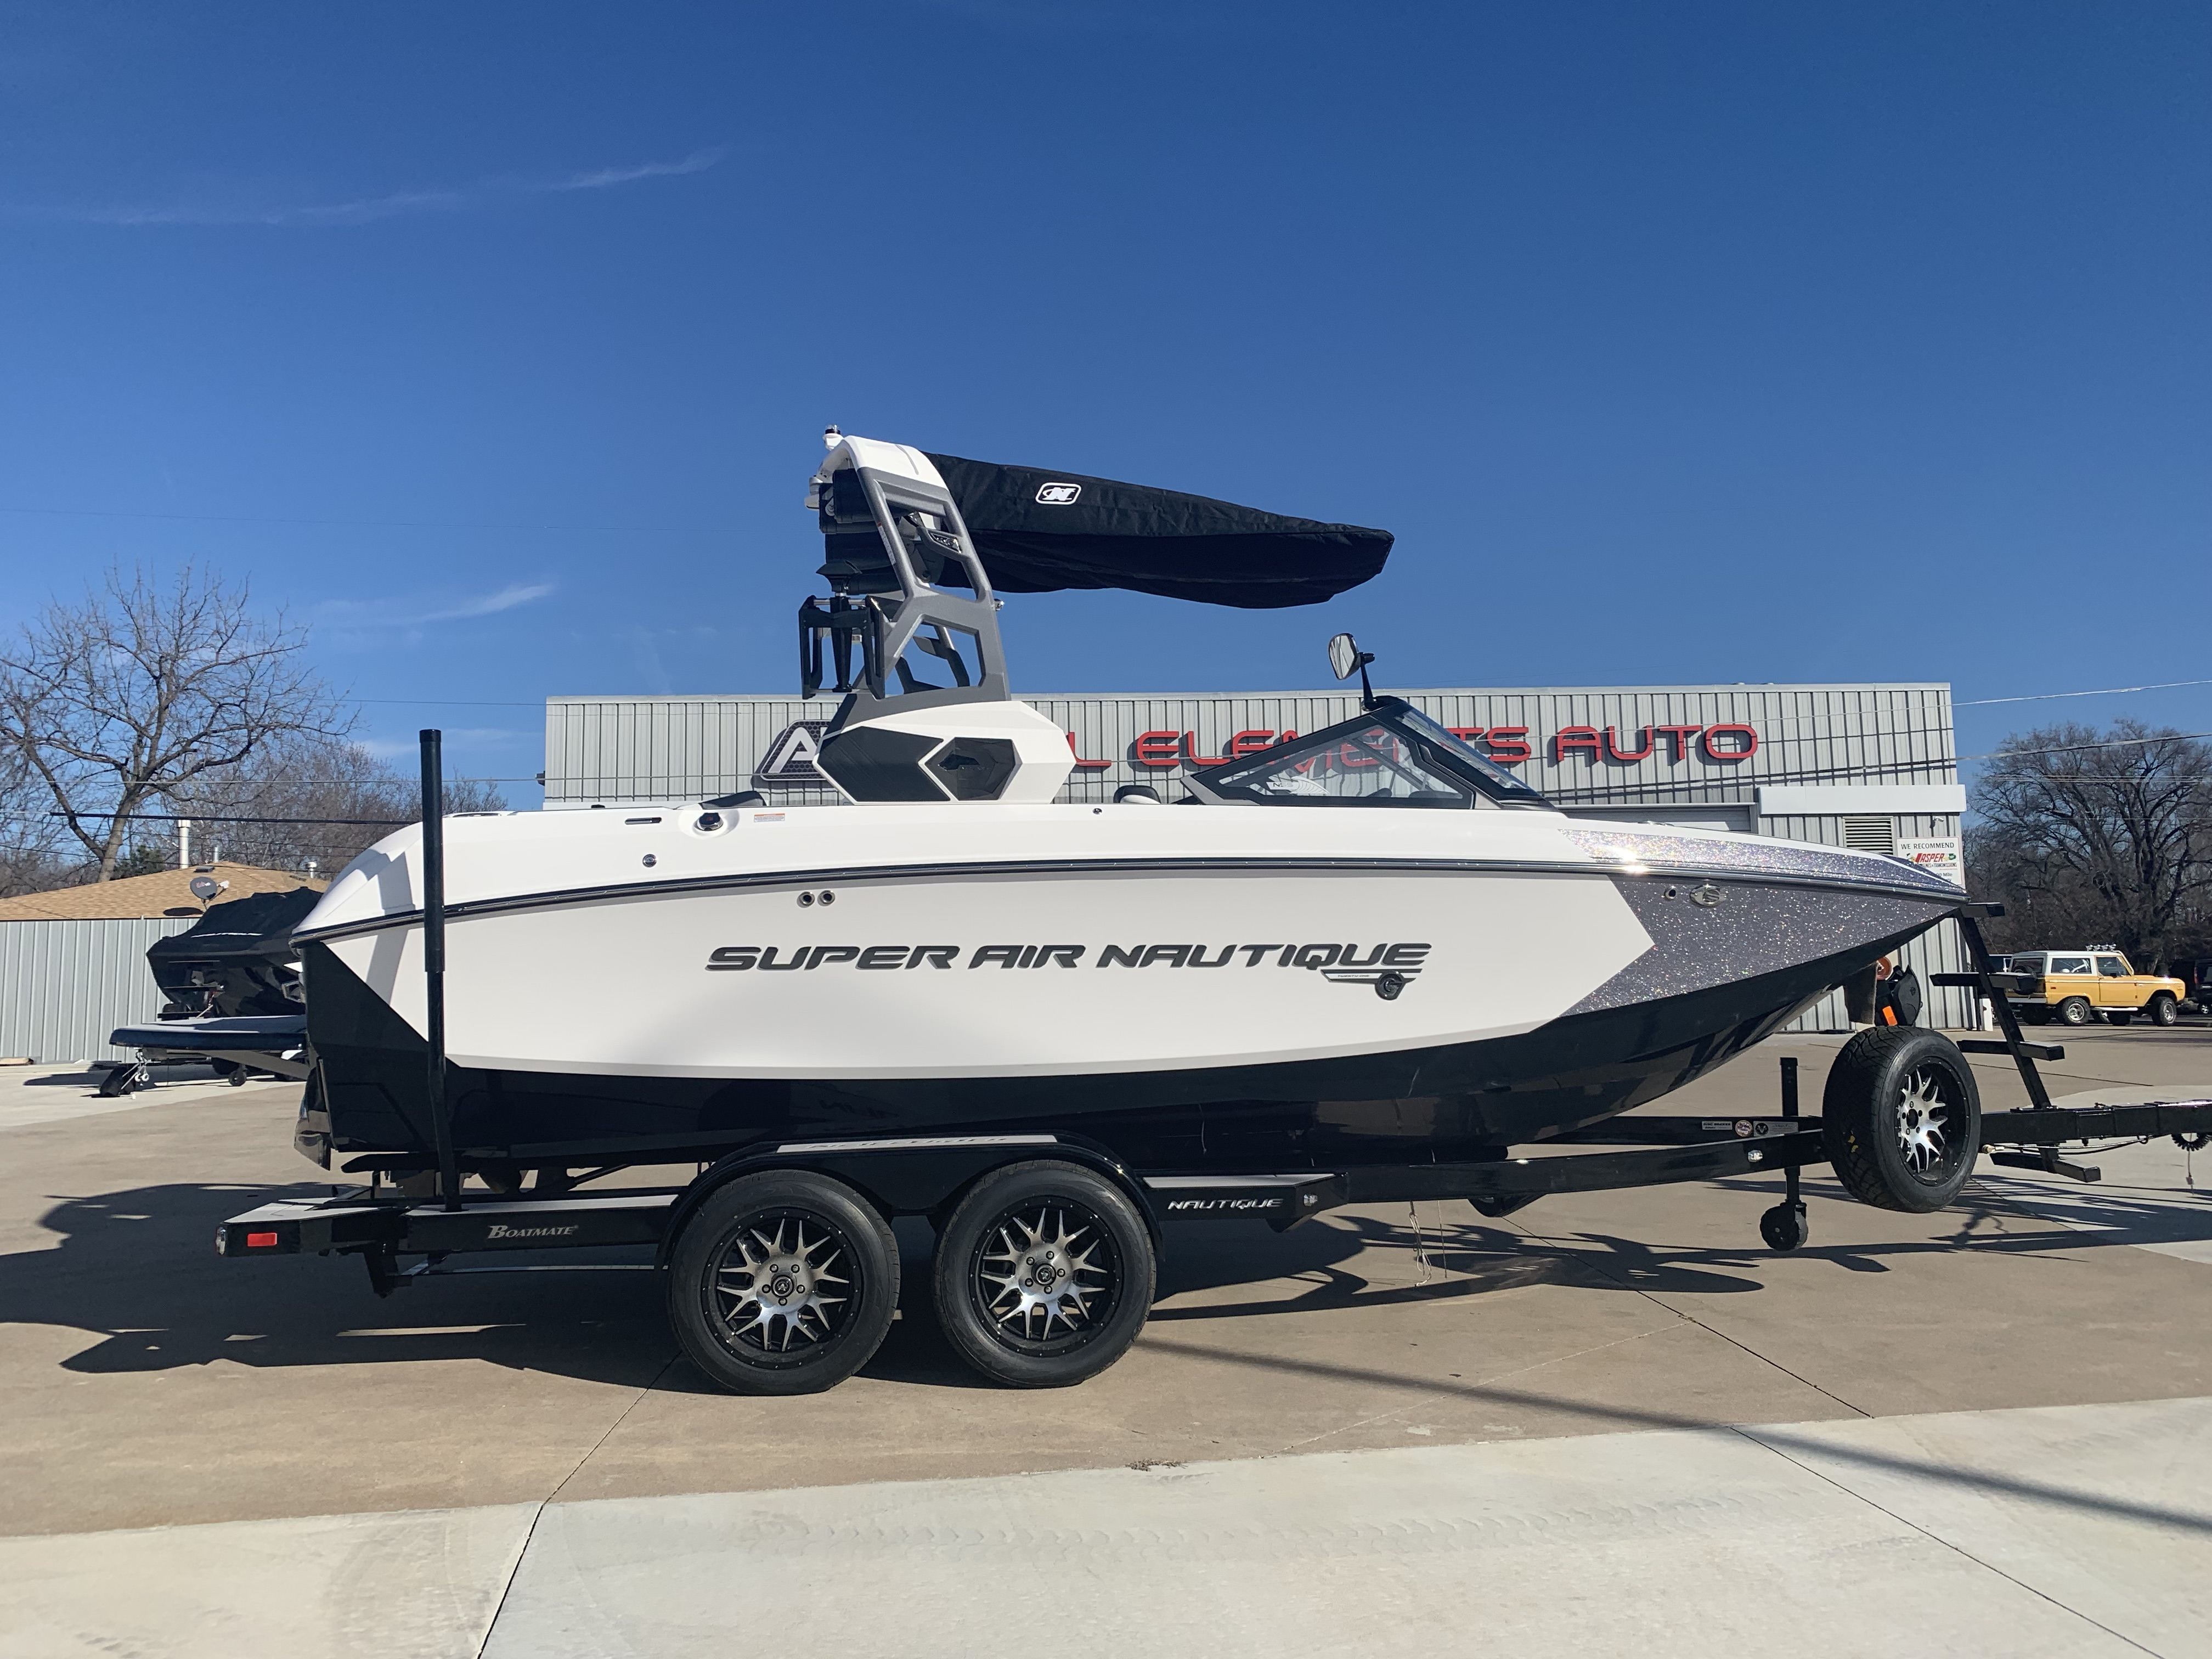 2019 Super Air Nautique G21for sale in Wichita, Kansas at All Elements Auto and Marine